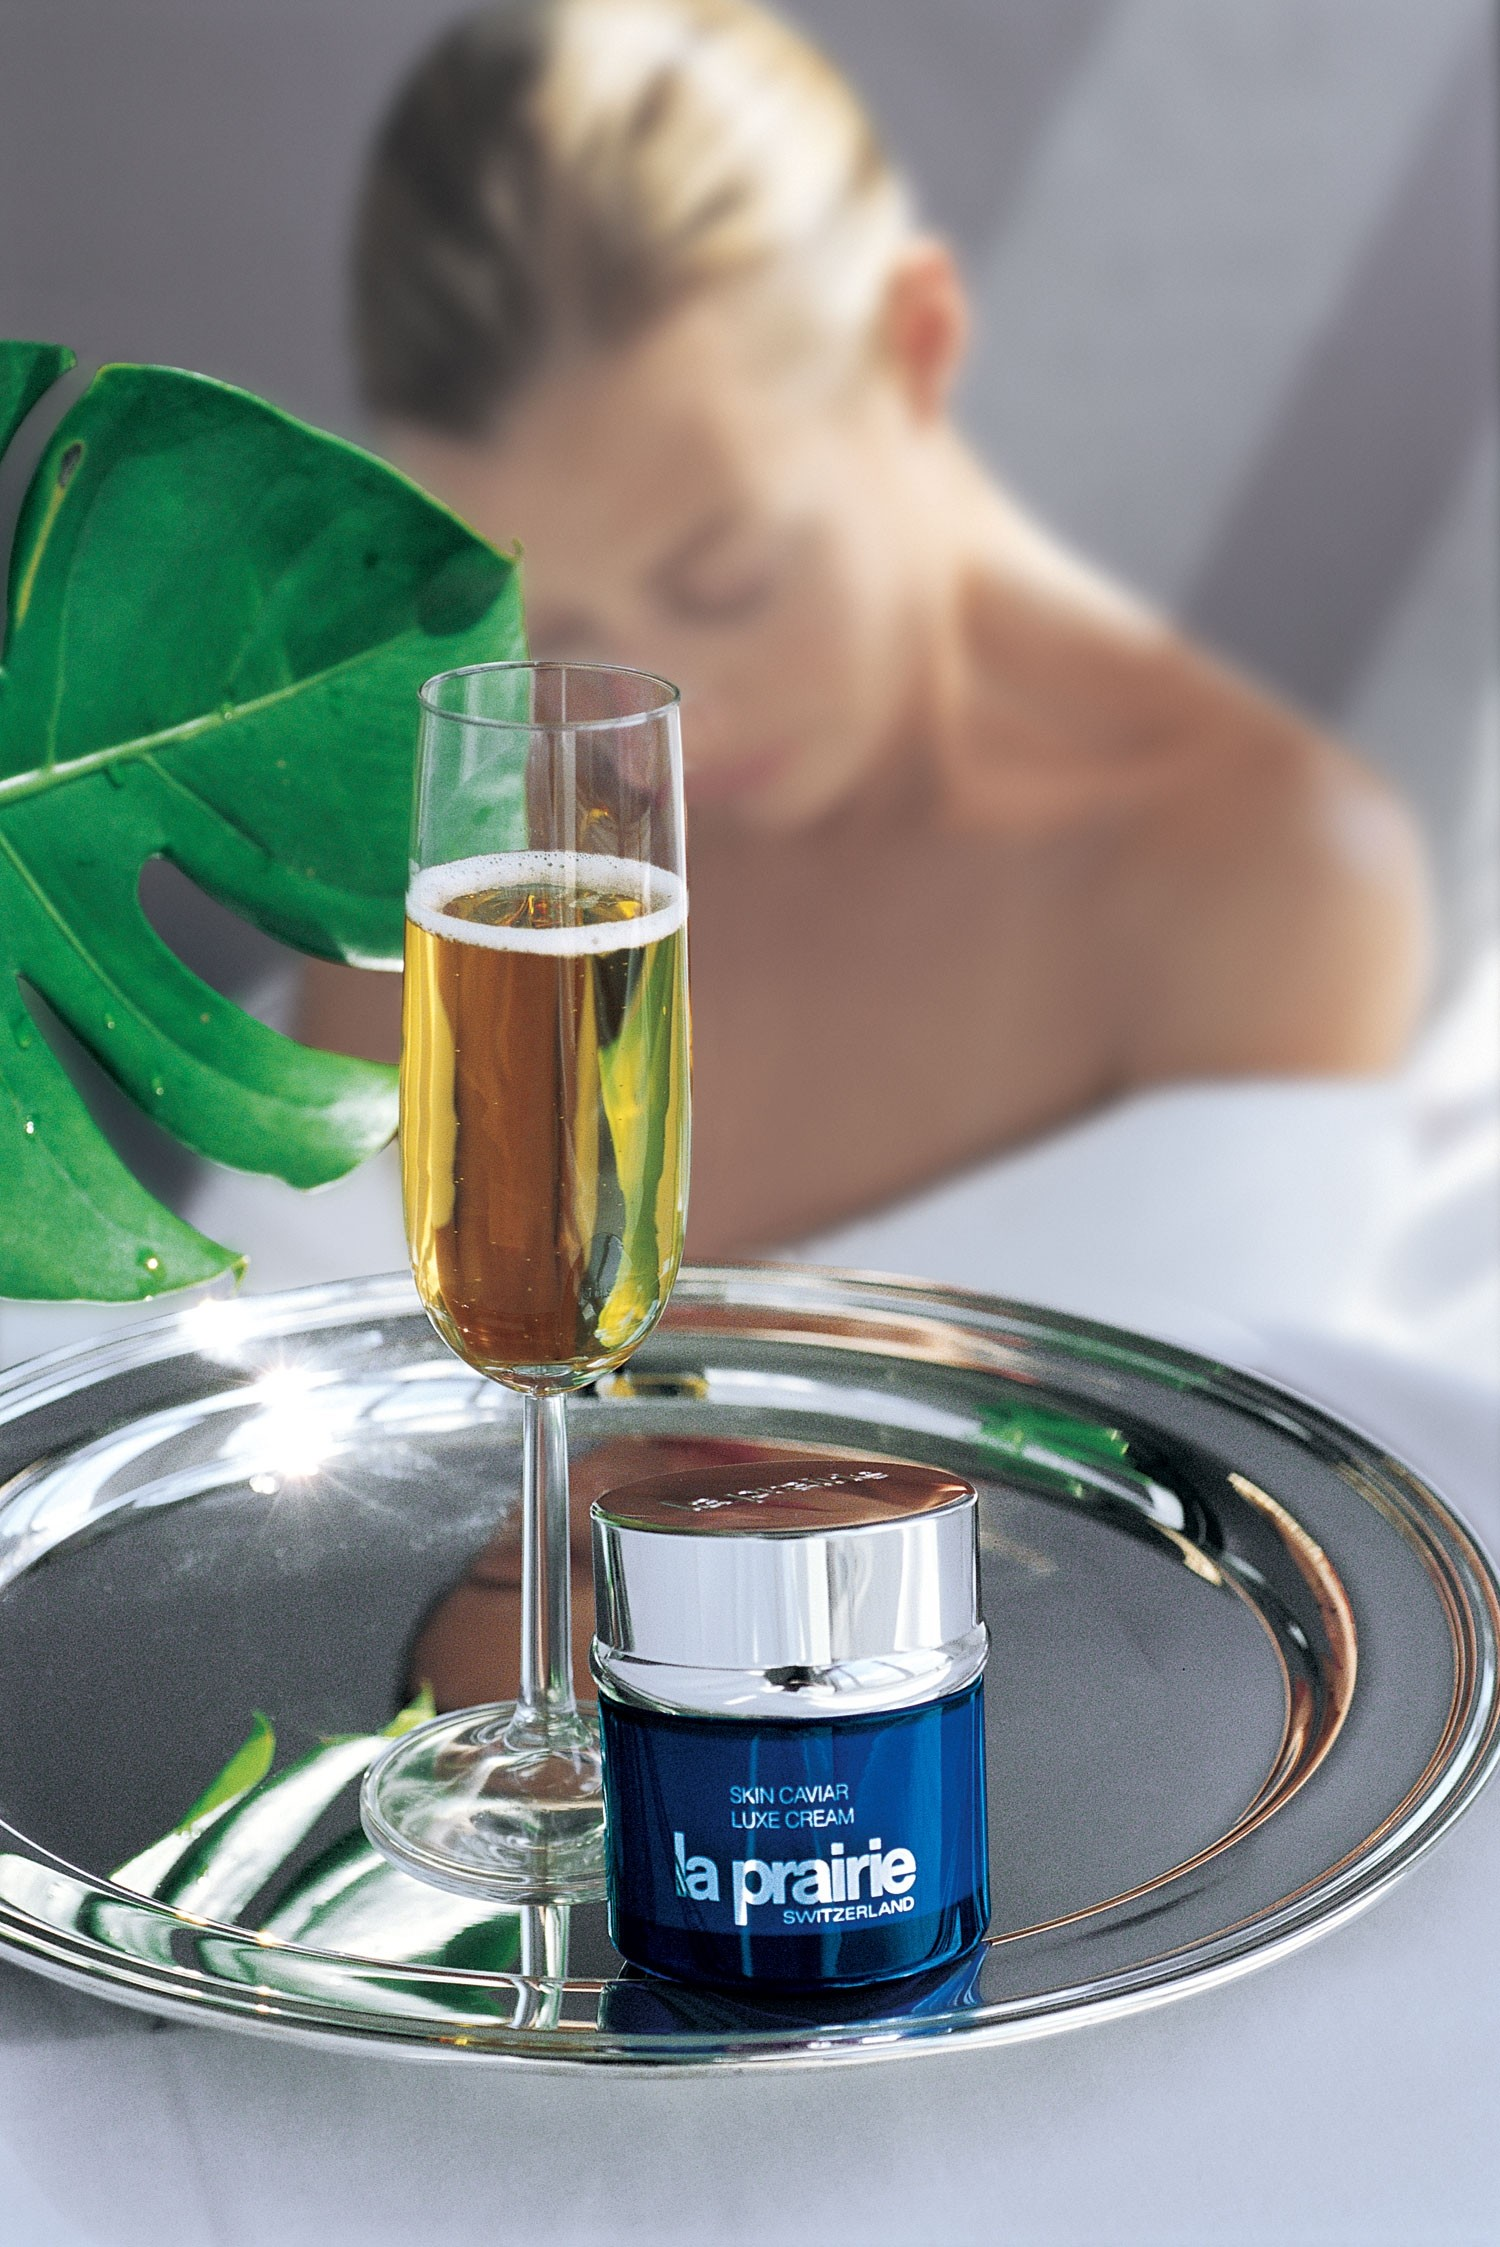 La Prairie at the Ritz-Carlton (1)